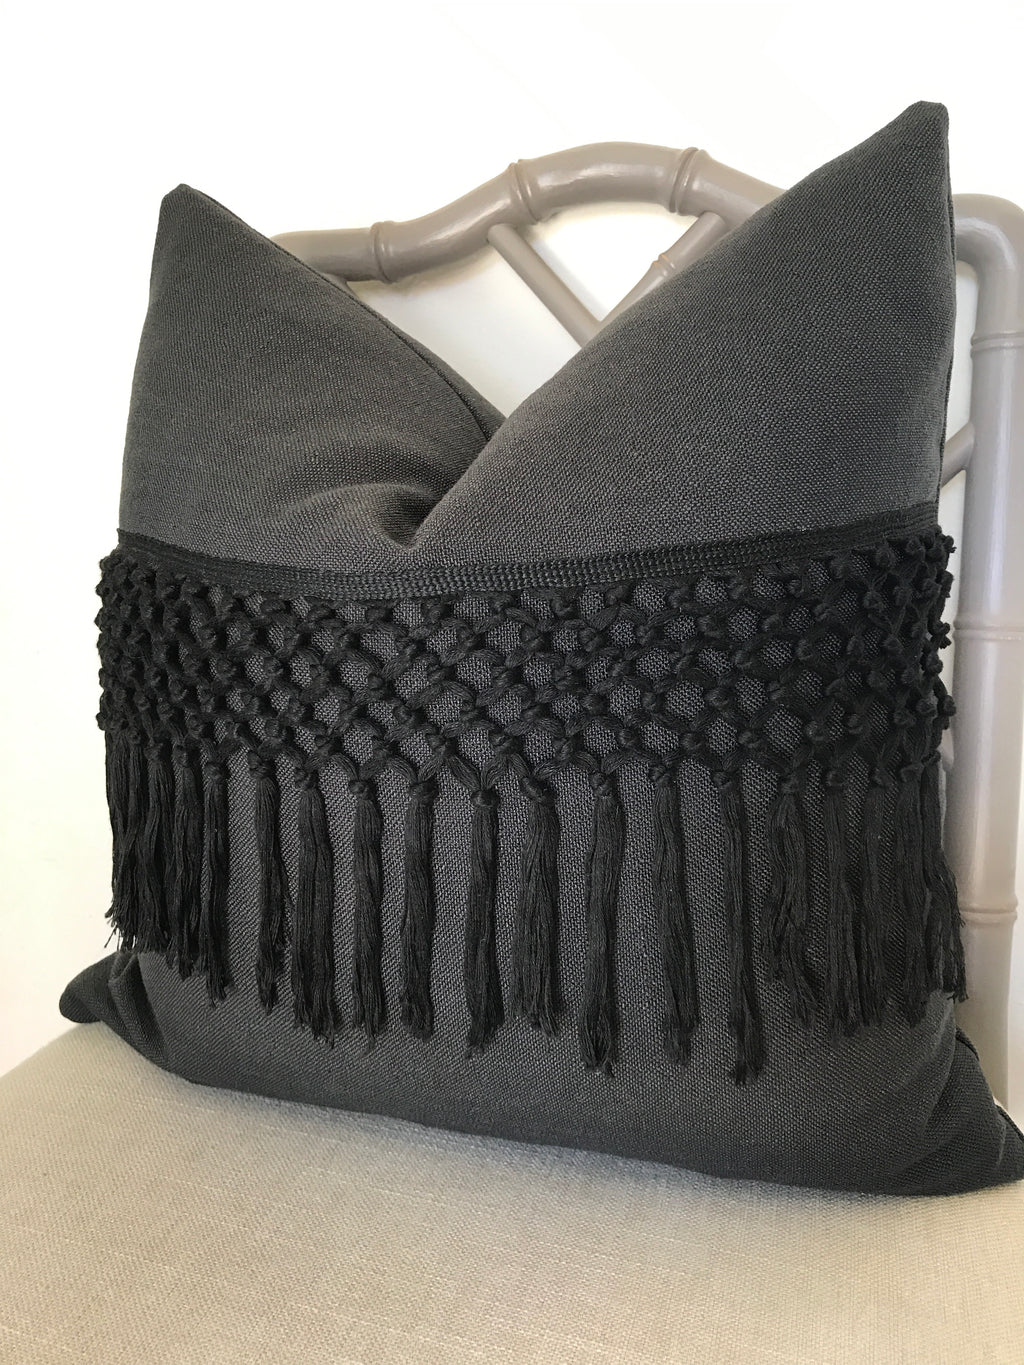 Macrame Fringe Pillow Cover - Black